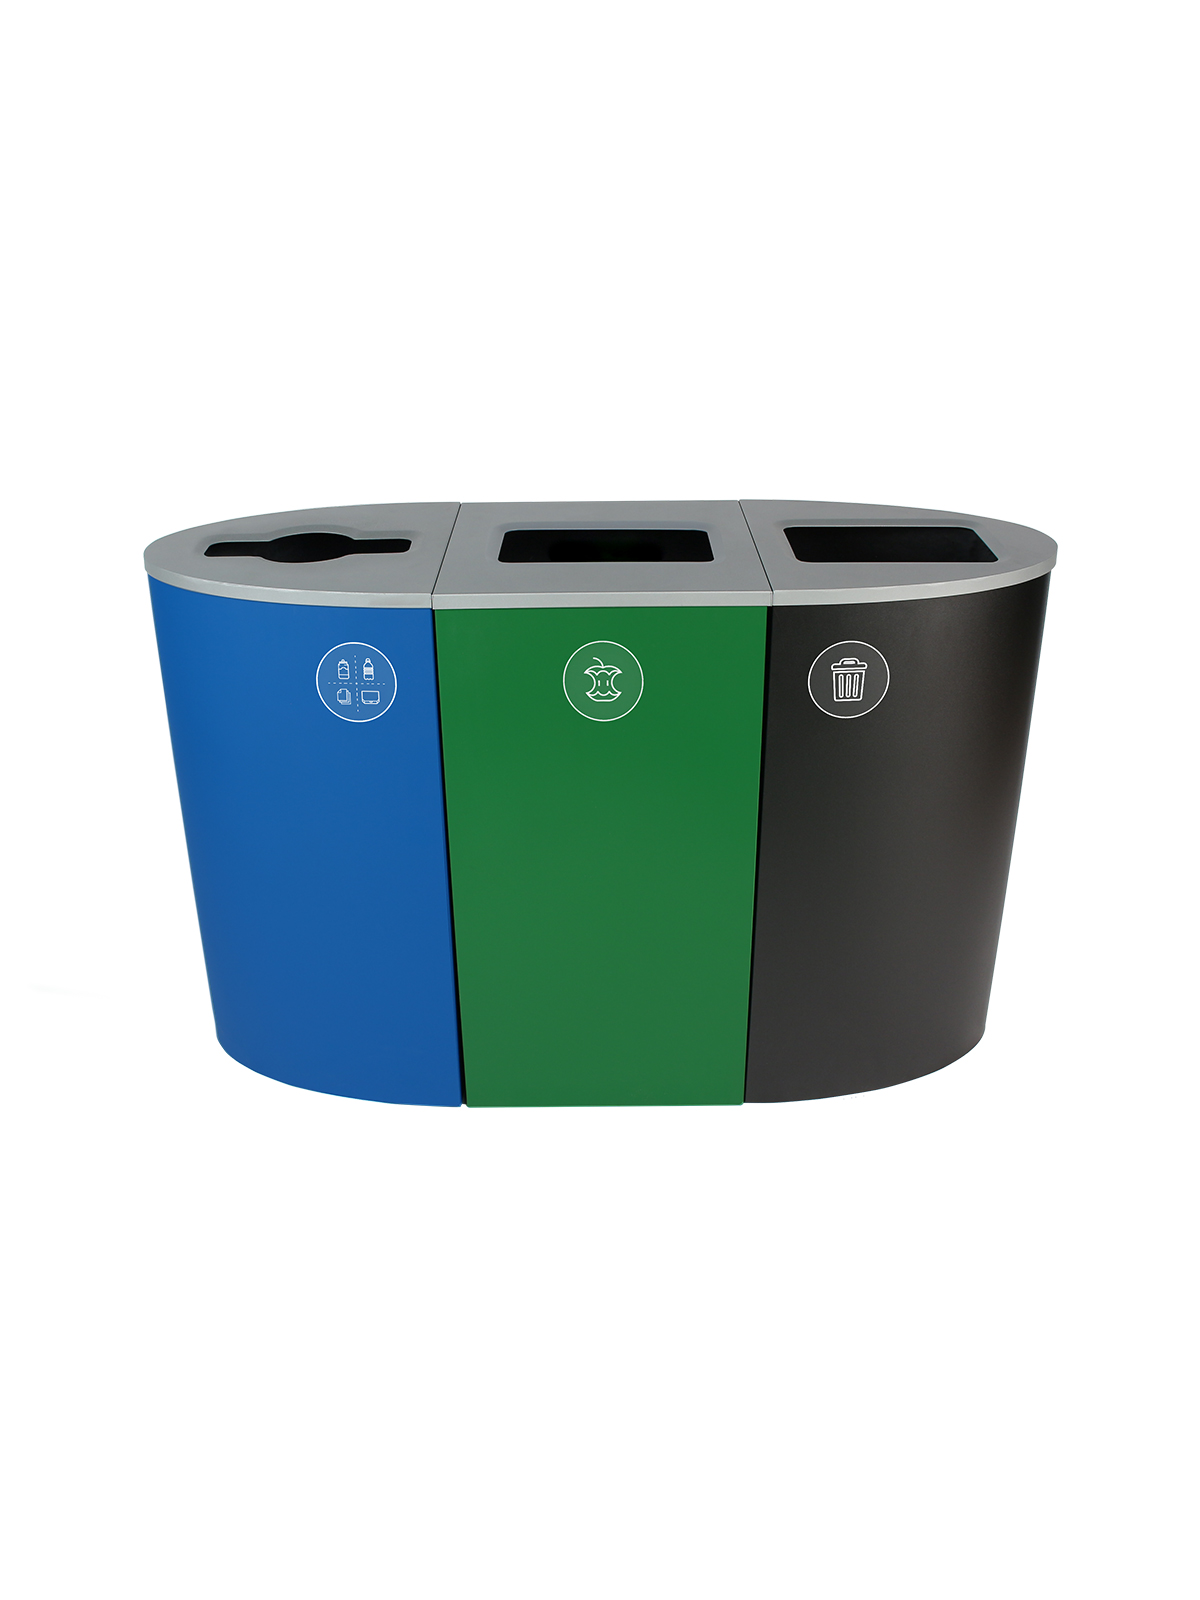 SPECTRUM - Triple - Wisconsin Compliant - Mixed Recyclables-Compost-Trash - Mixed-Full - Blue-Green-Black